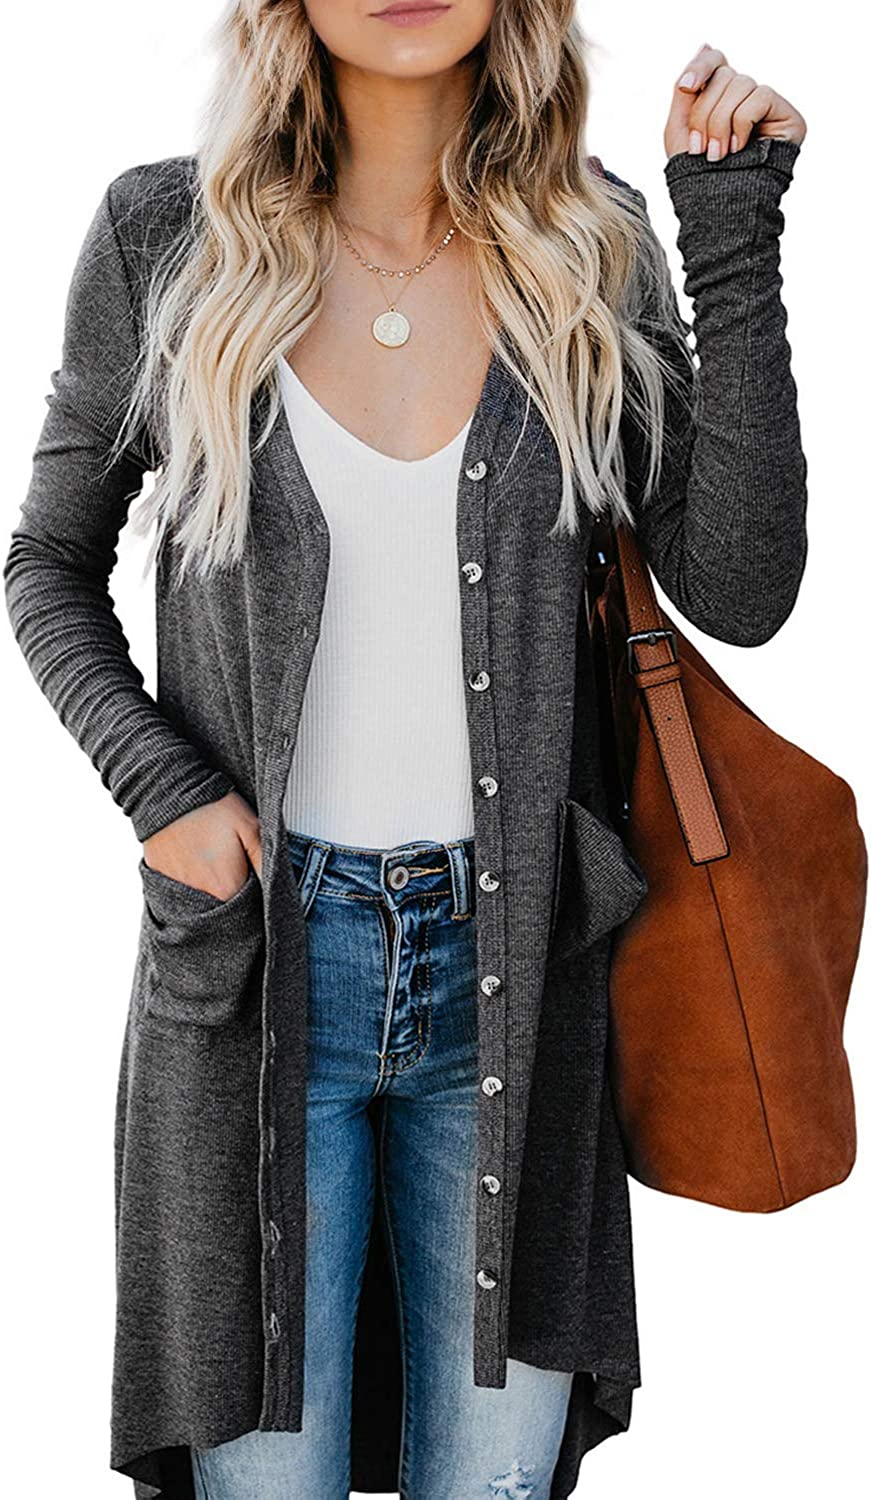 B07Y1SQ9WD Actloe Women Long Sleeve Open Front Button Long Knitted Cardigan Outwear with Pocket 71z9kMRSFPL